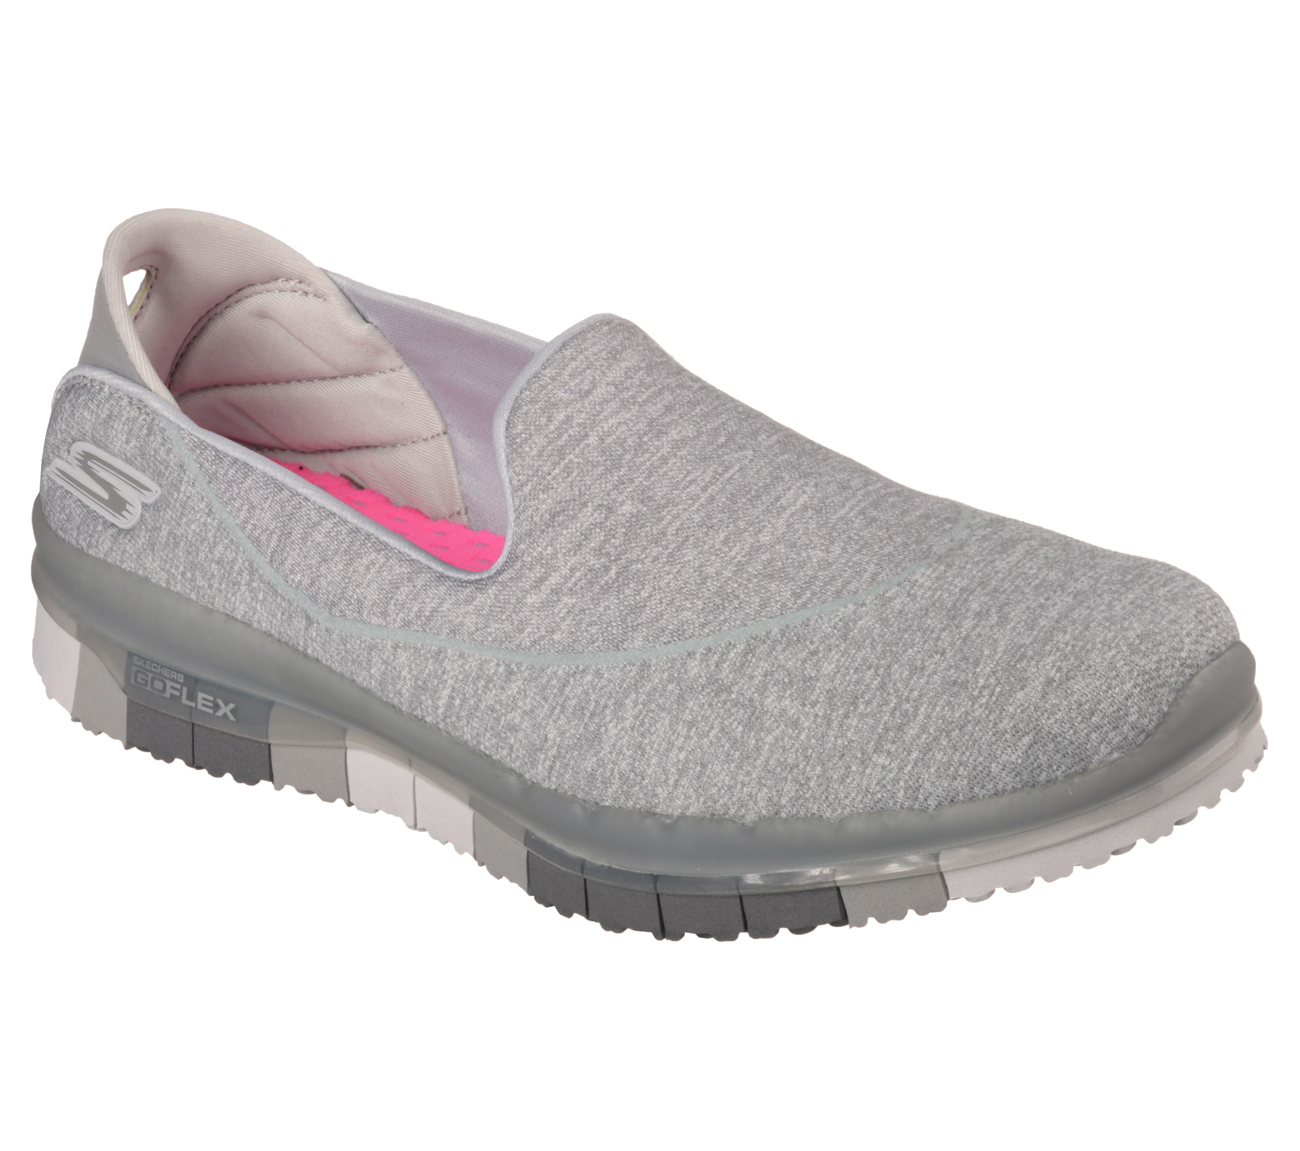 Womens wide width athletic shoes. Clothing stores online